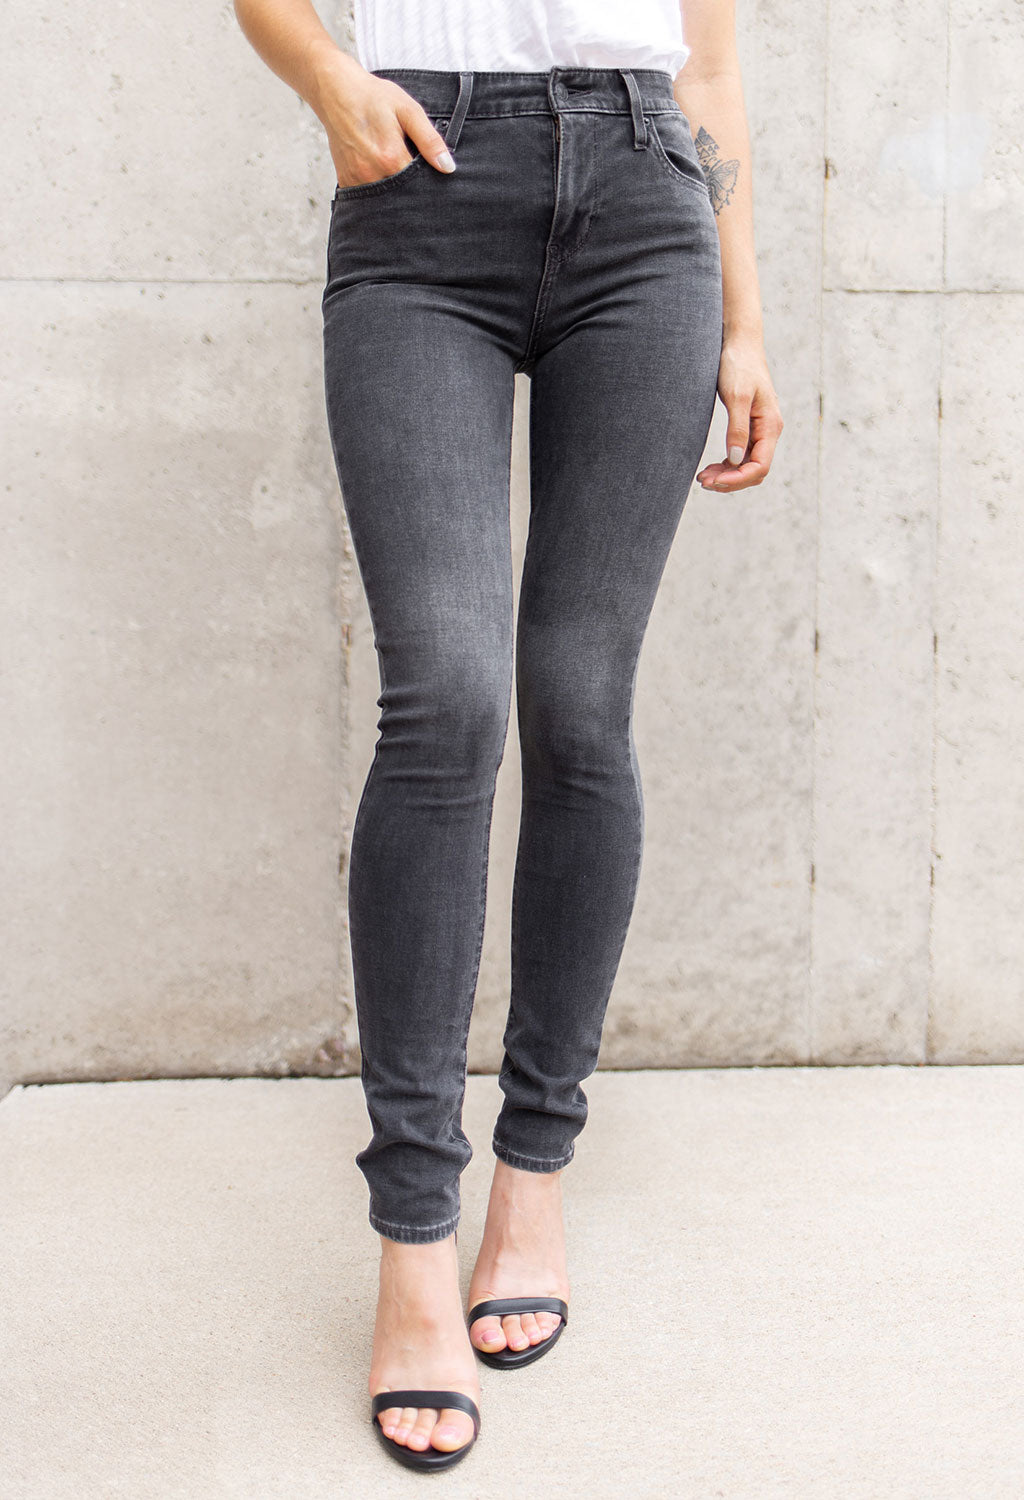 Levi's 721 High Rise Skinny, Black Wash